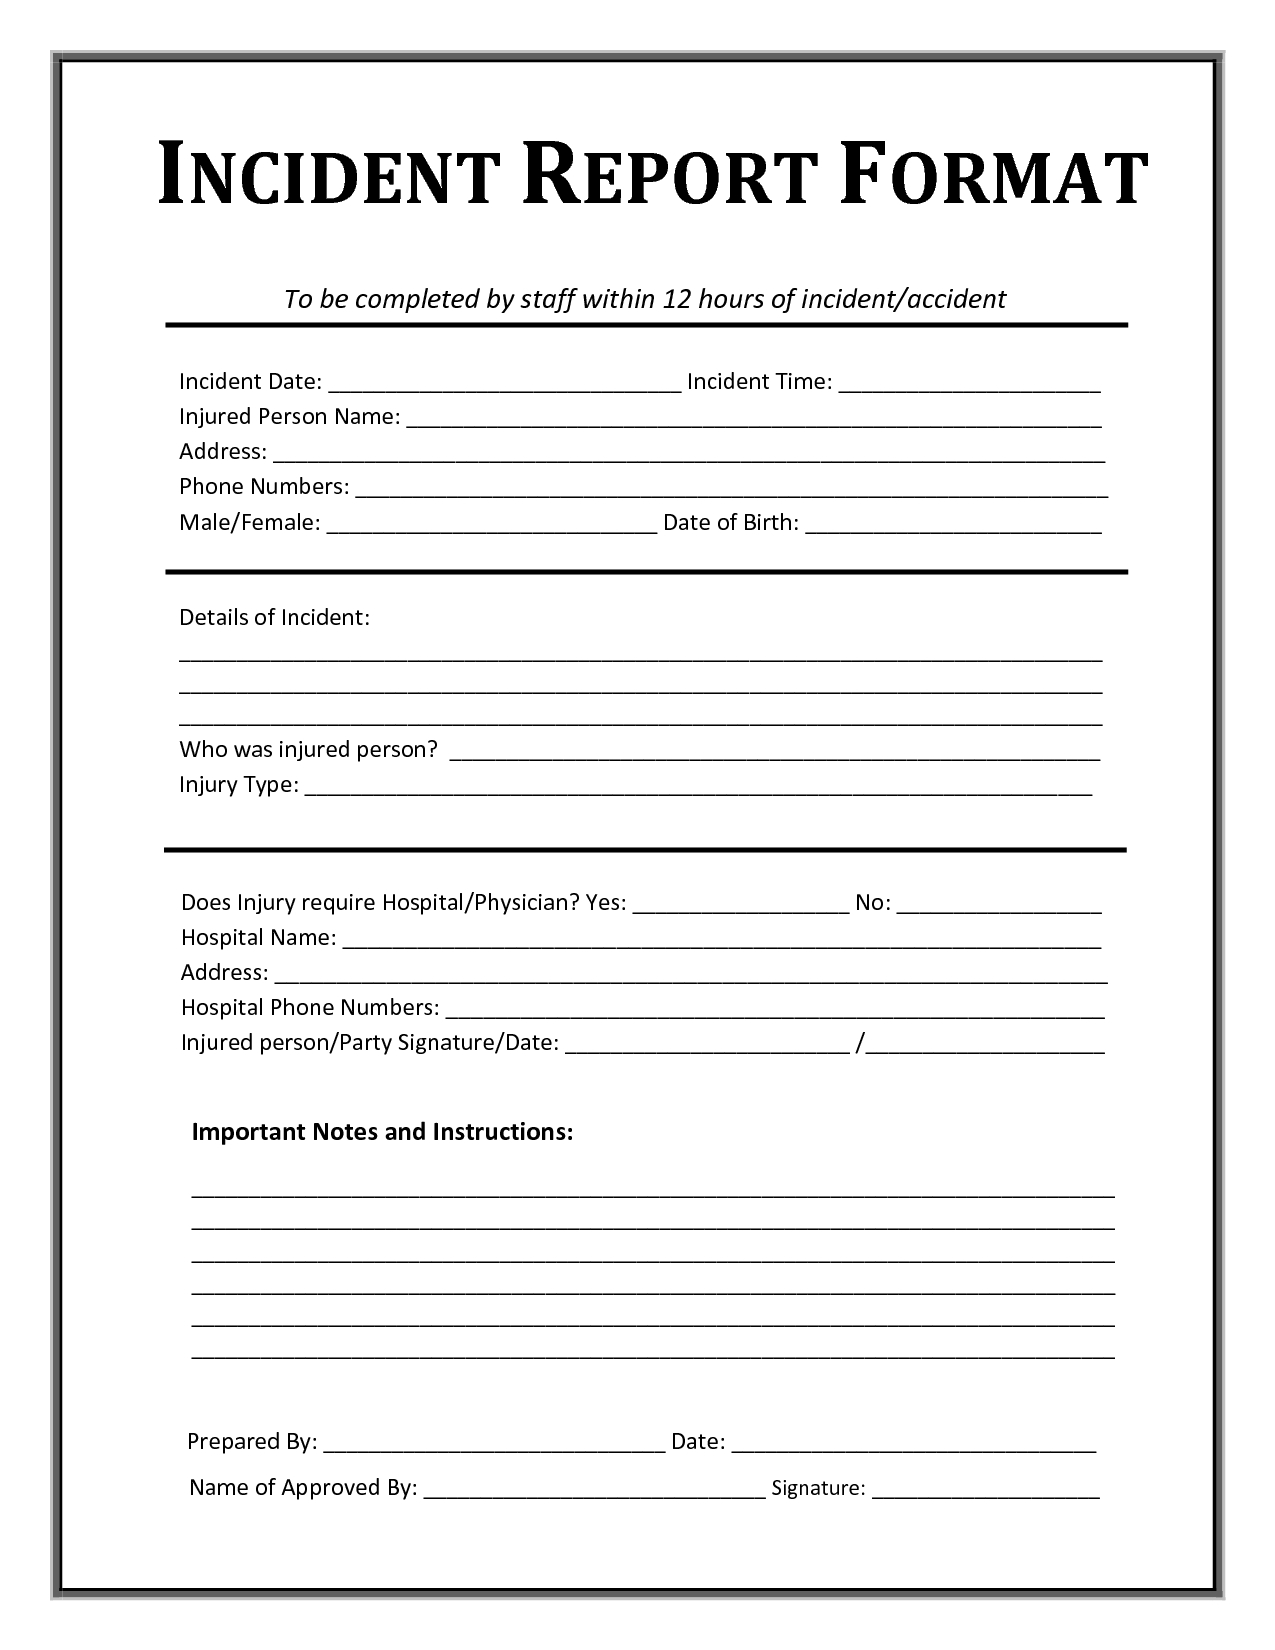 Incident Report Template | Incident Report, Incident Report For Incident Report Form Template Doc